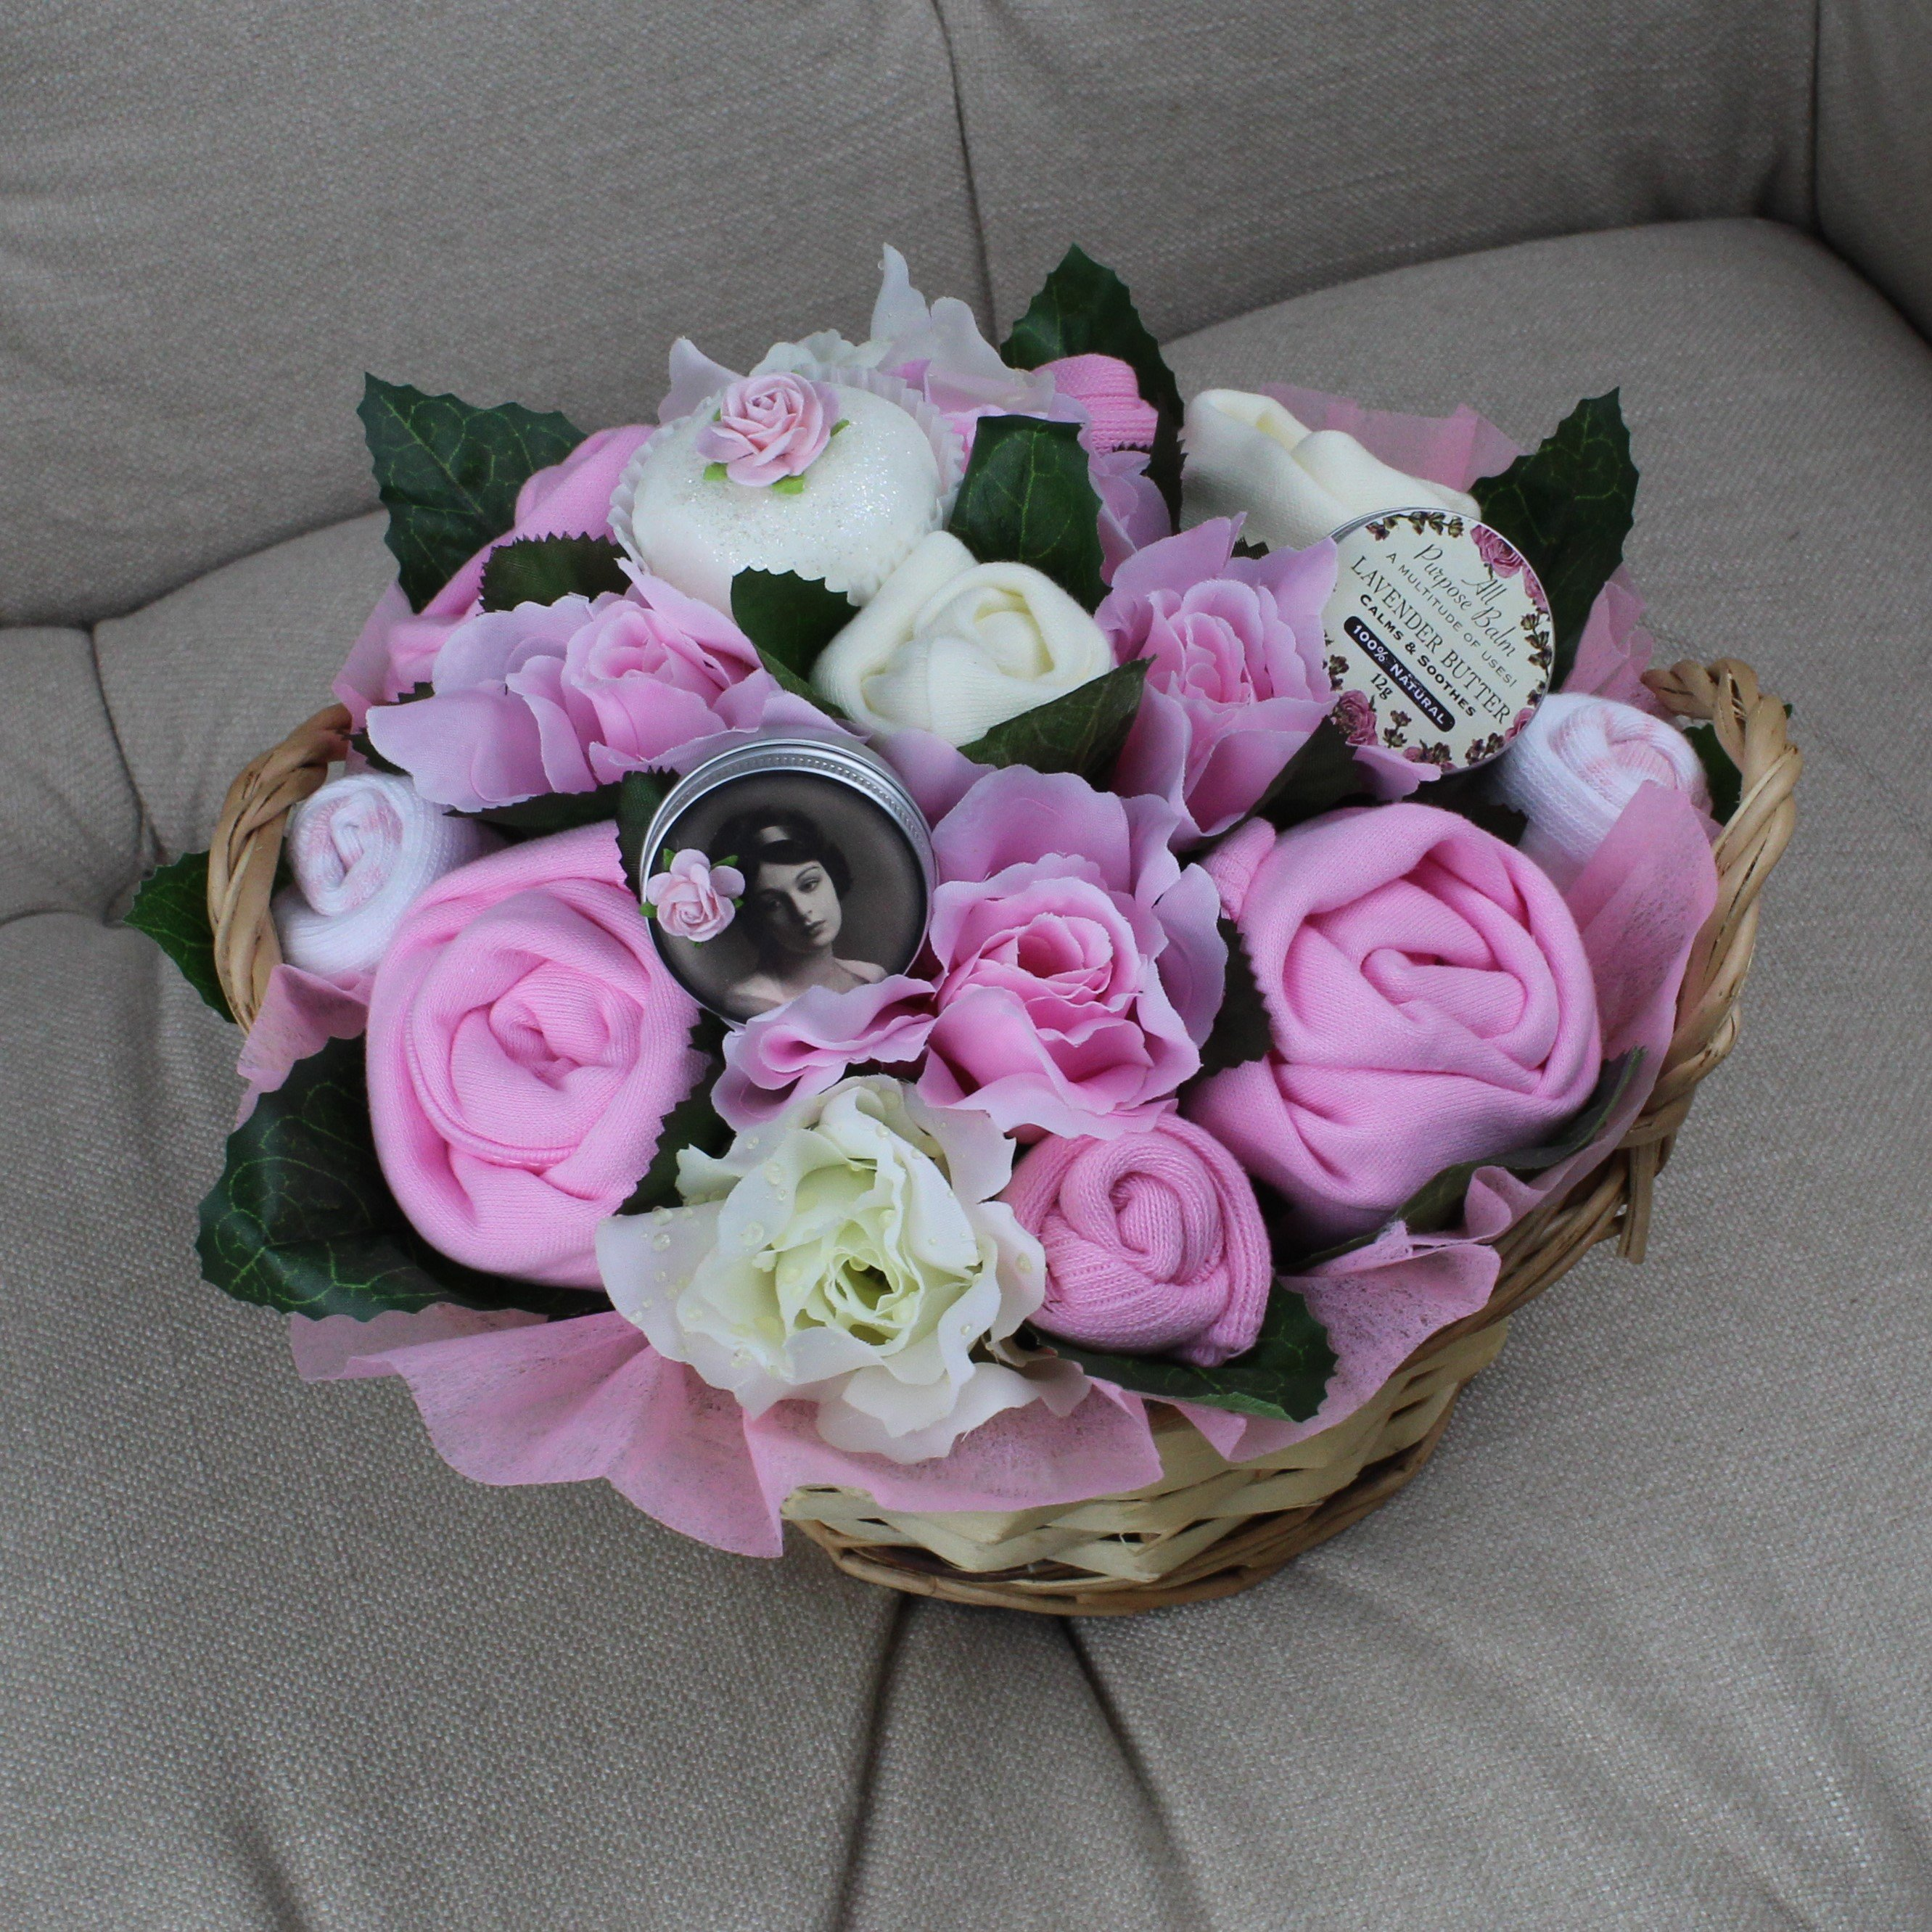 Deluxe Pampering Bouquet Pink - Baby Clothing Bouquet